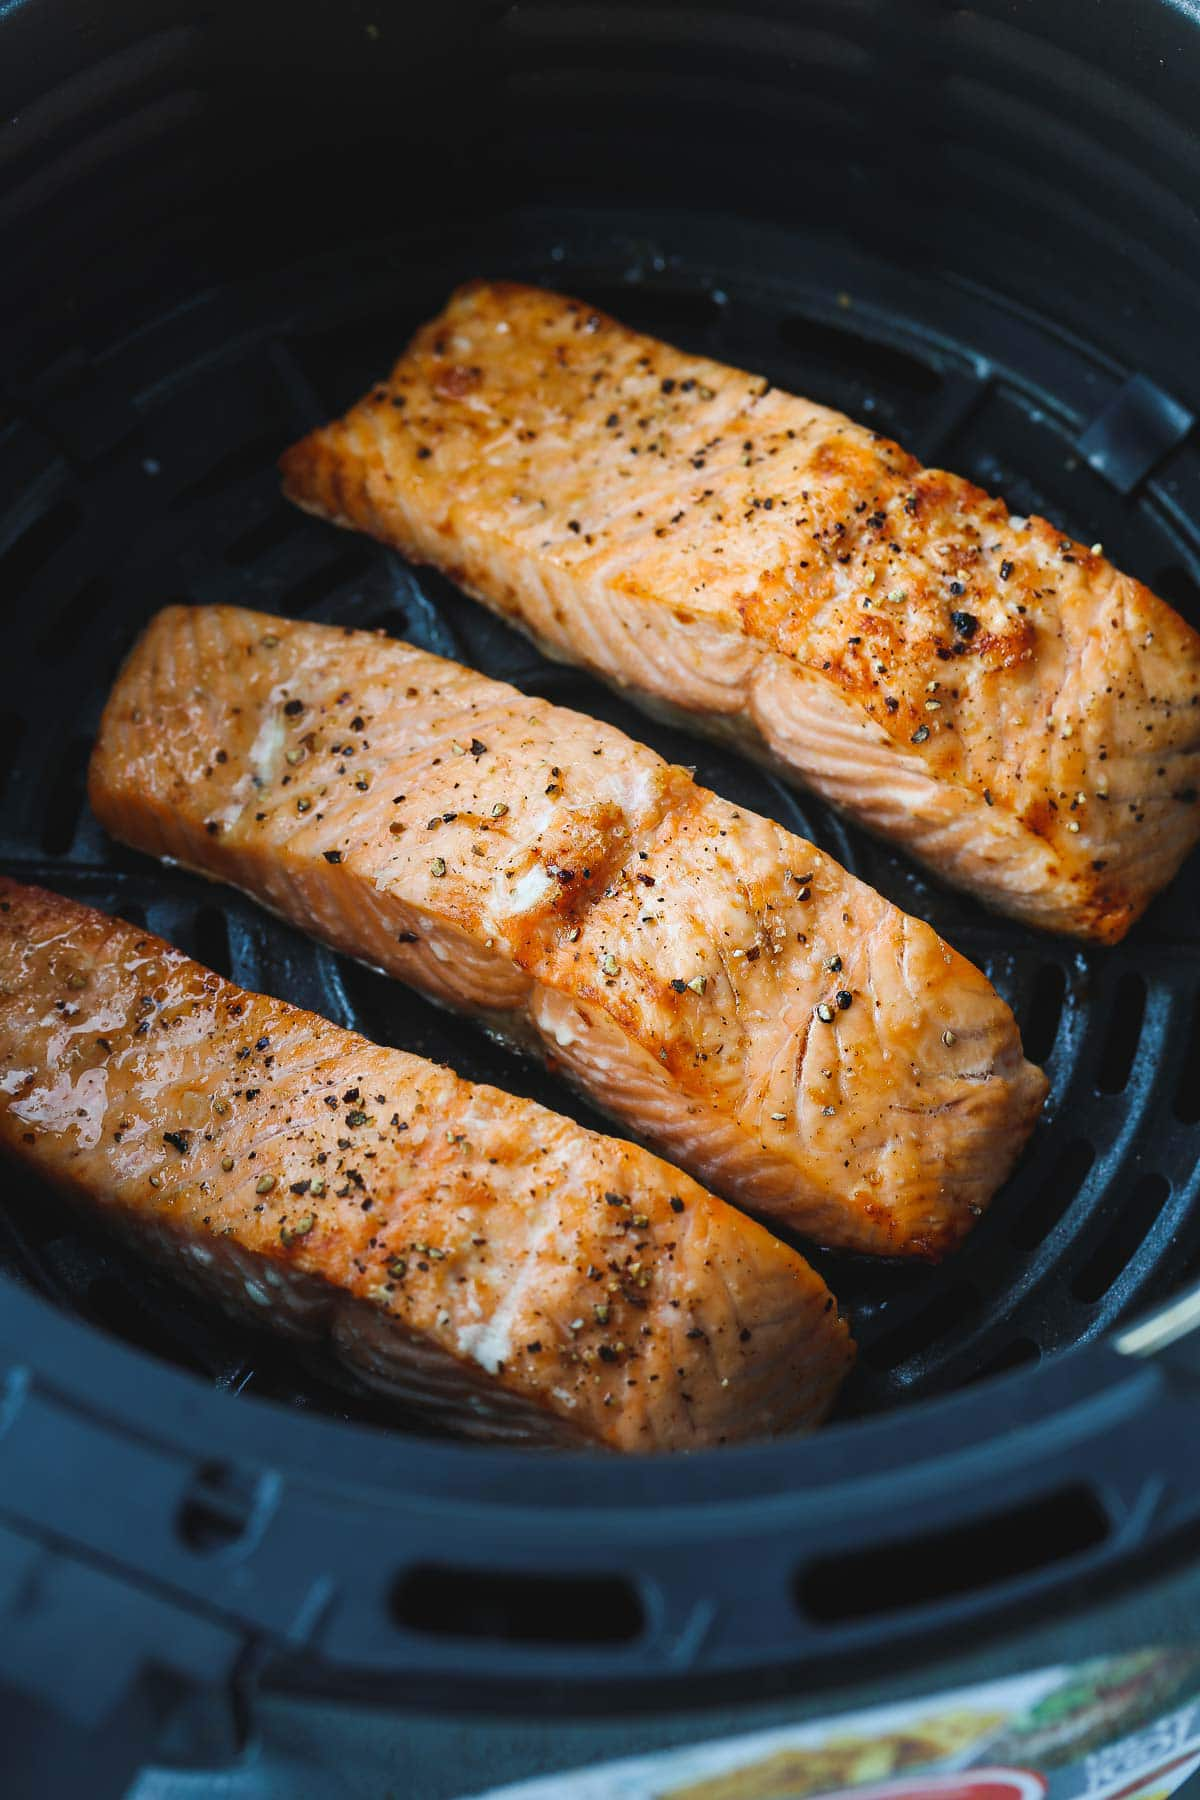 A close up shot of three cooked salmon fillets in the air fryer basket.